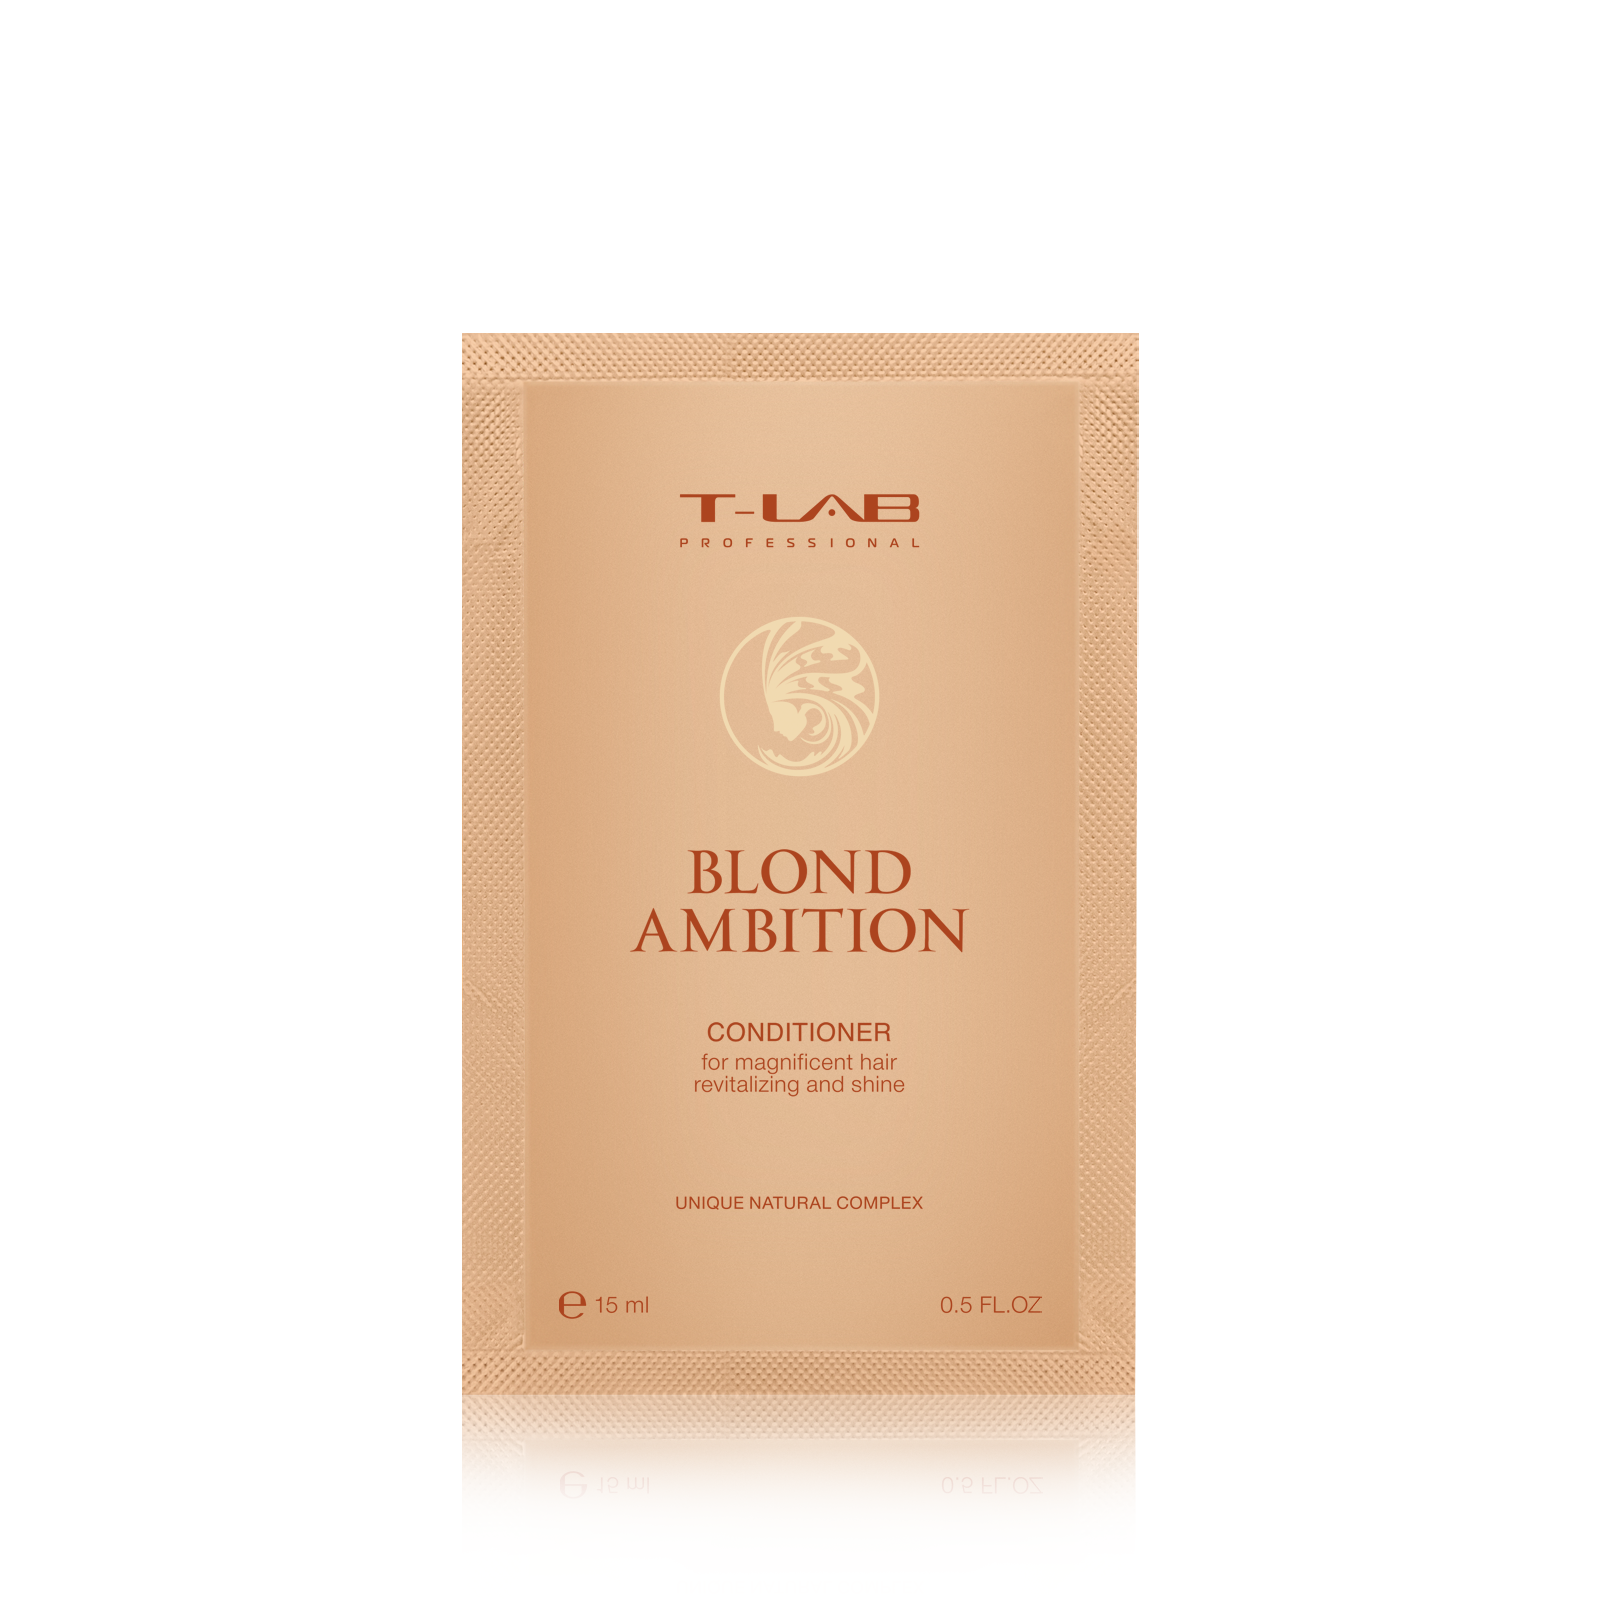 BLOND AMBITION CONDITIONER 15 ml